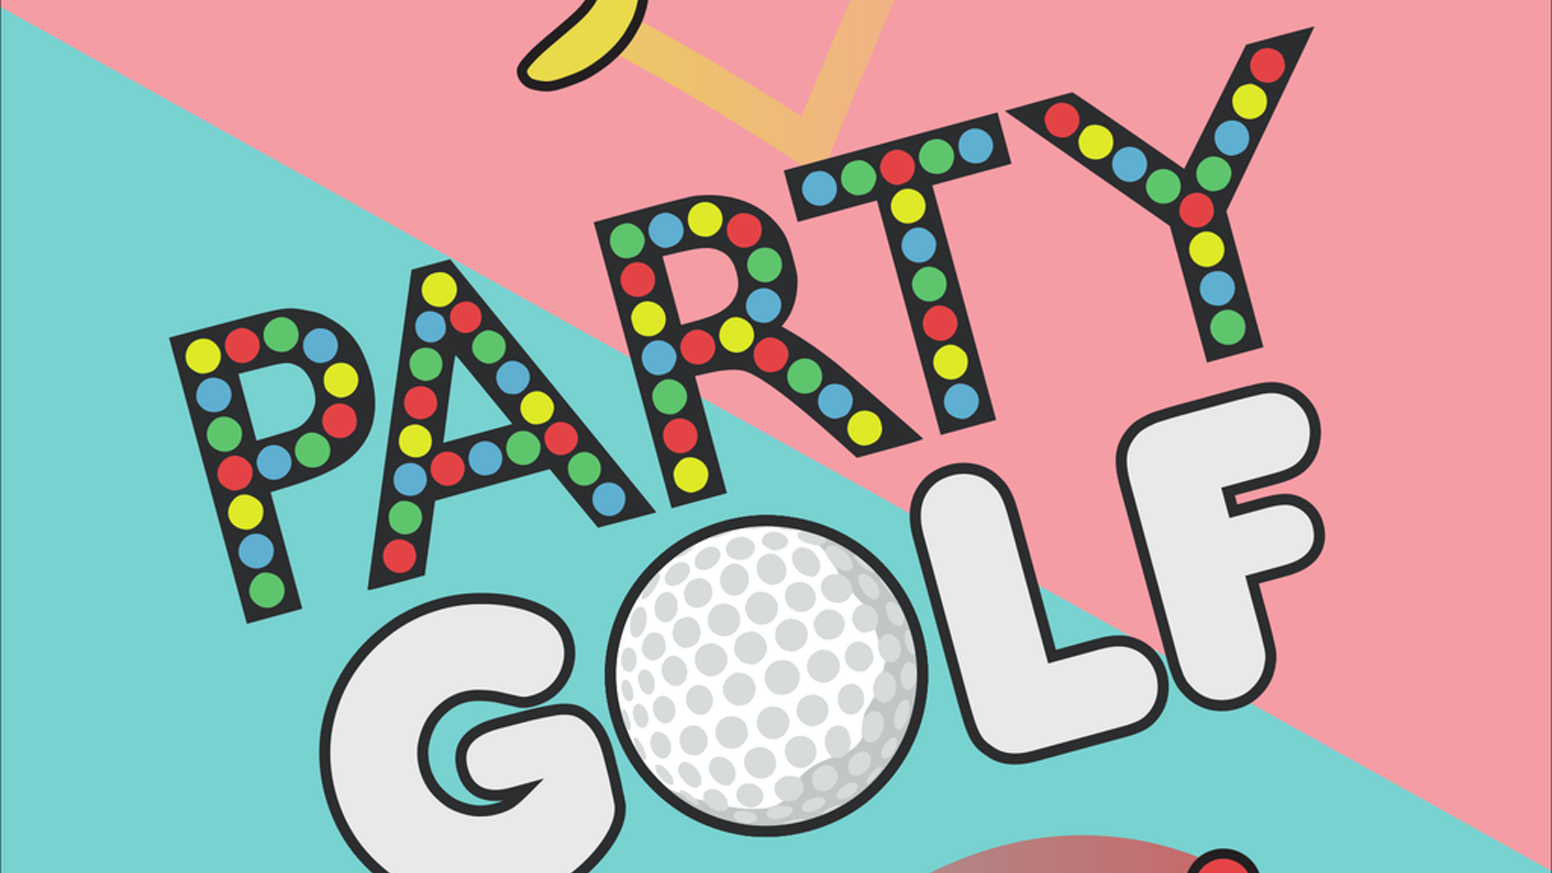 Everything golf isn't!  A fun, frenetic, couchplay game with over a trillion variations of gameplay!  We're shooting for a PS4 release.